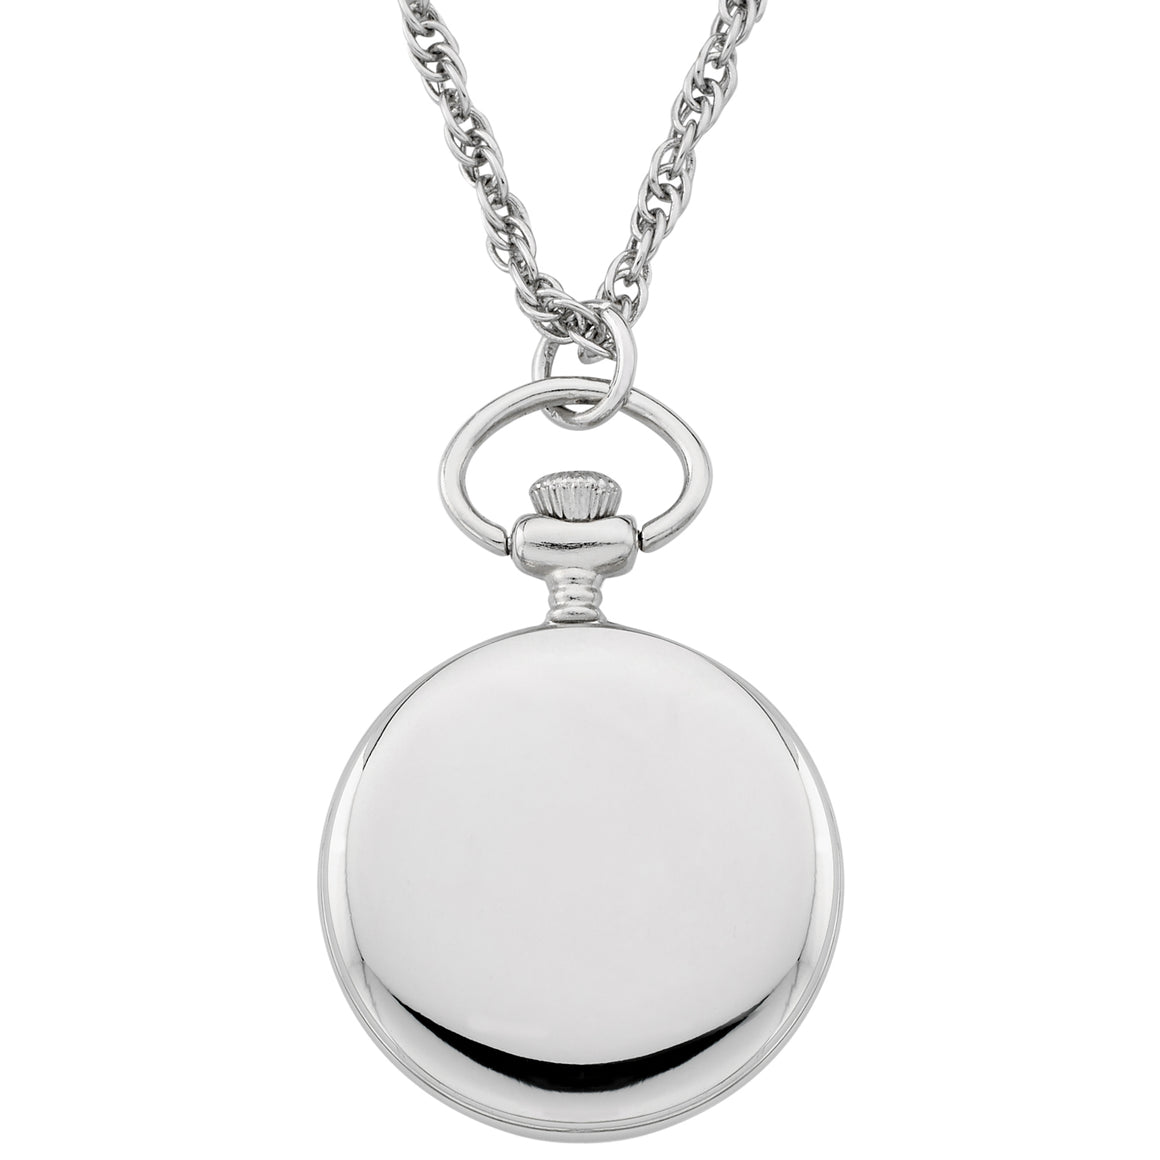 Gotham Women's Silver-Tone Open Face Pendant Watch with Chain # GWC14140SR